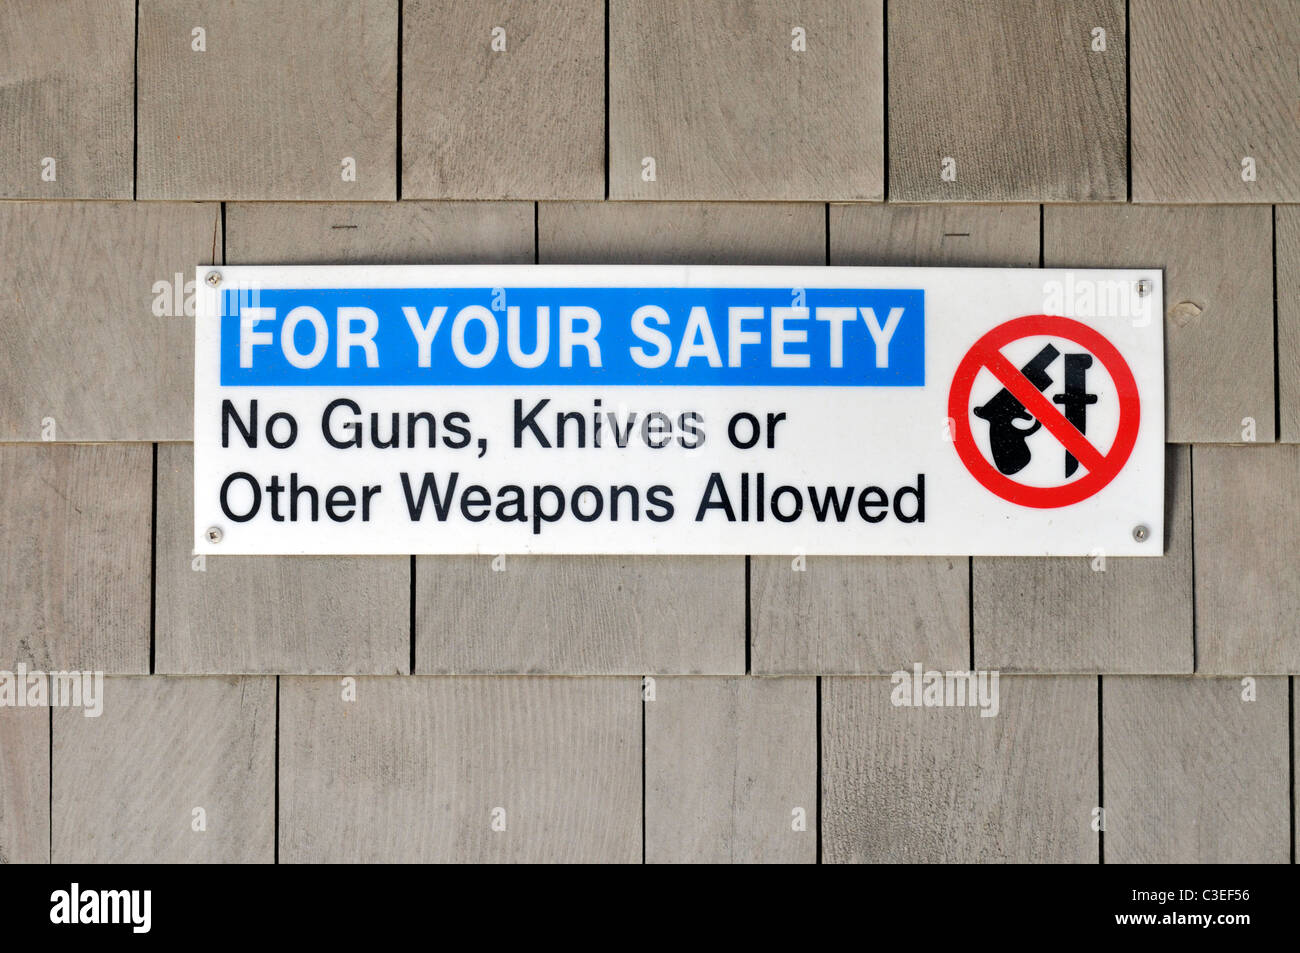 Safety sign on side of building-No guns, knives or other weapons allowed. USA - Stock Image